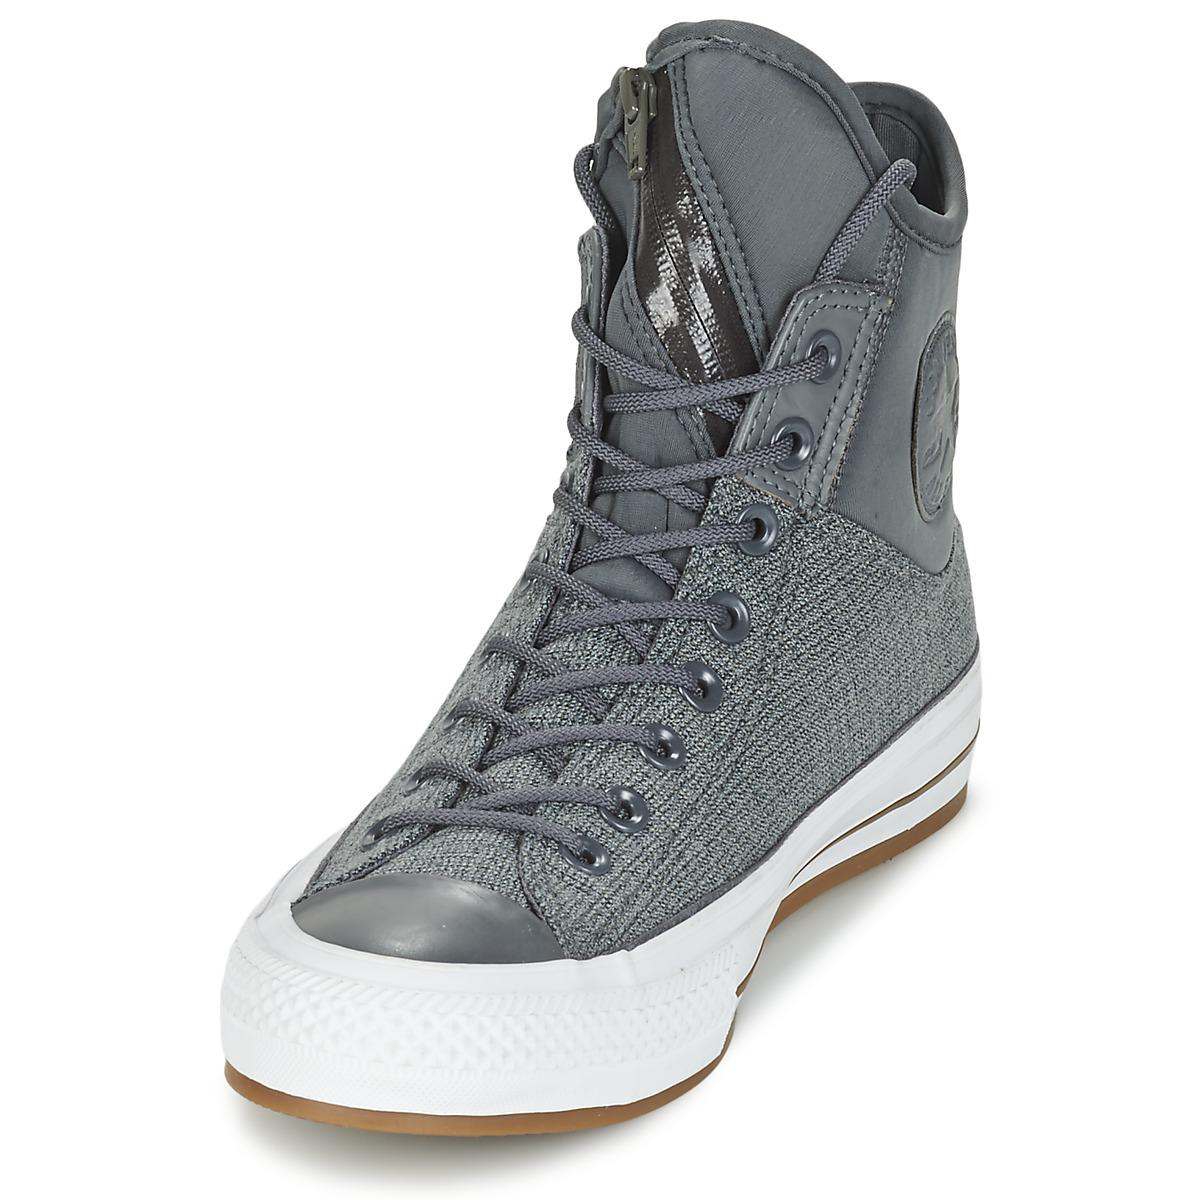 Converse Chuck Taylor All Star Ma-1 Se Camo Knit Hi Shoes (high-top Trainers) in Grey (Grey) for Men